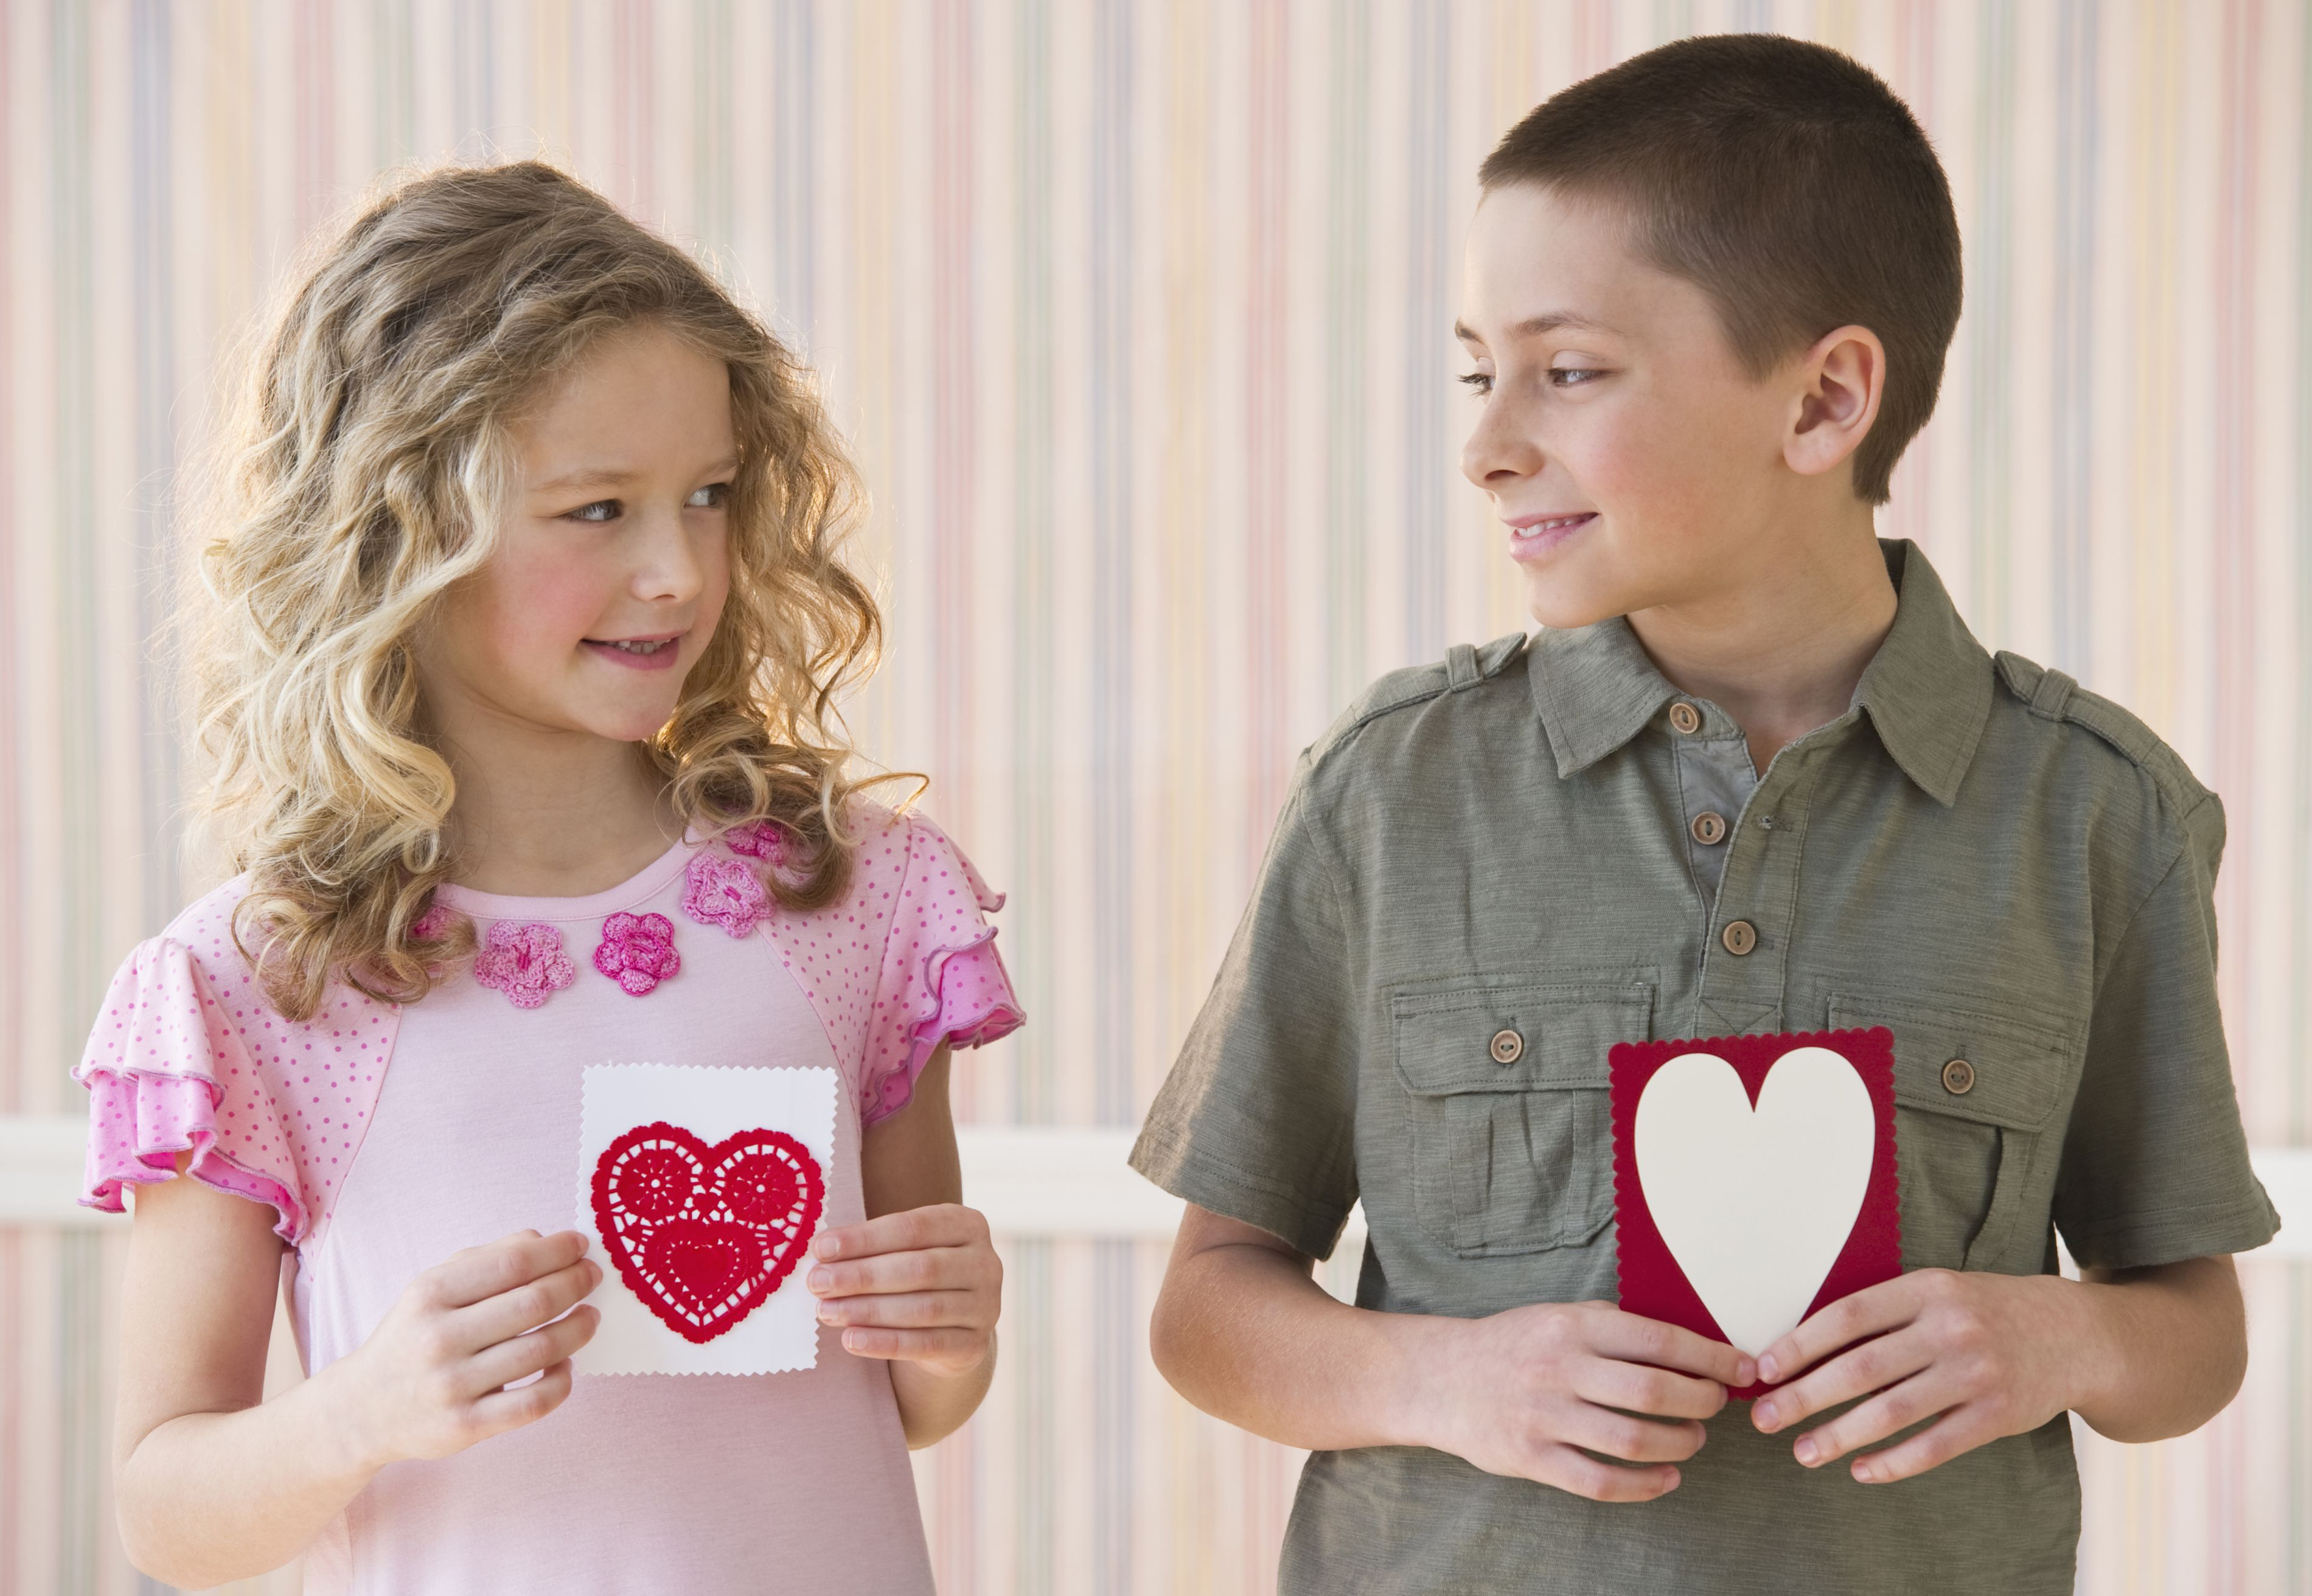 A girl and boy holding homemade valentines.